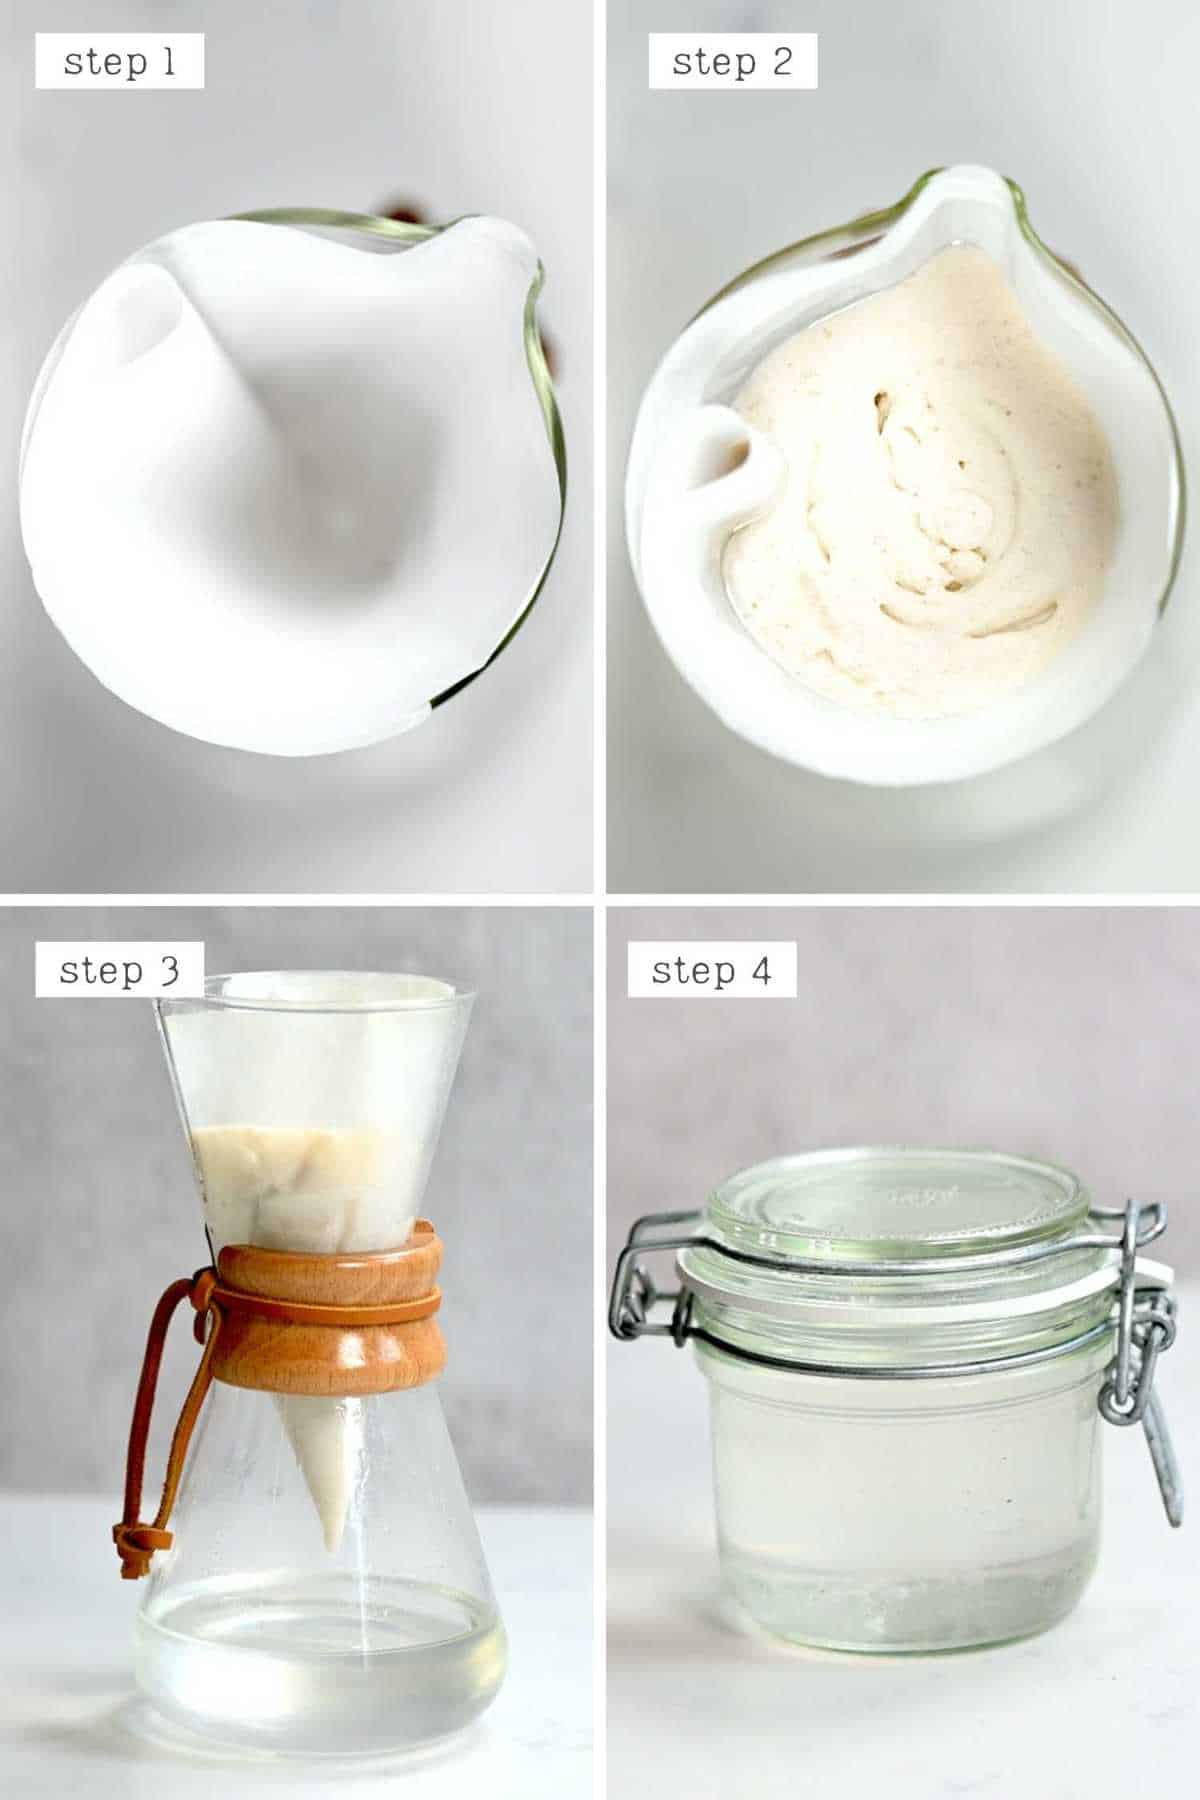 Dripping coconut oil though a coffee filter